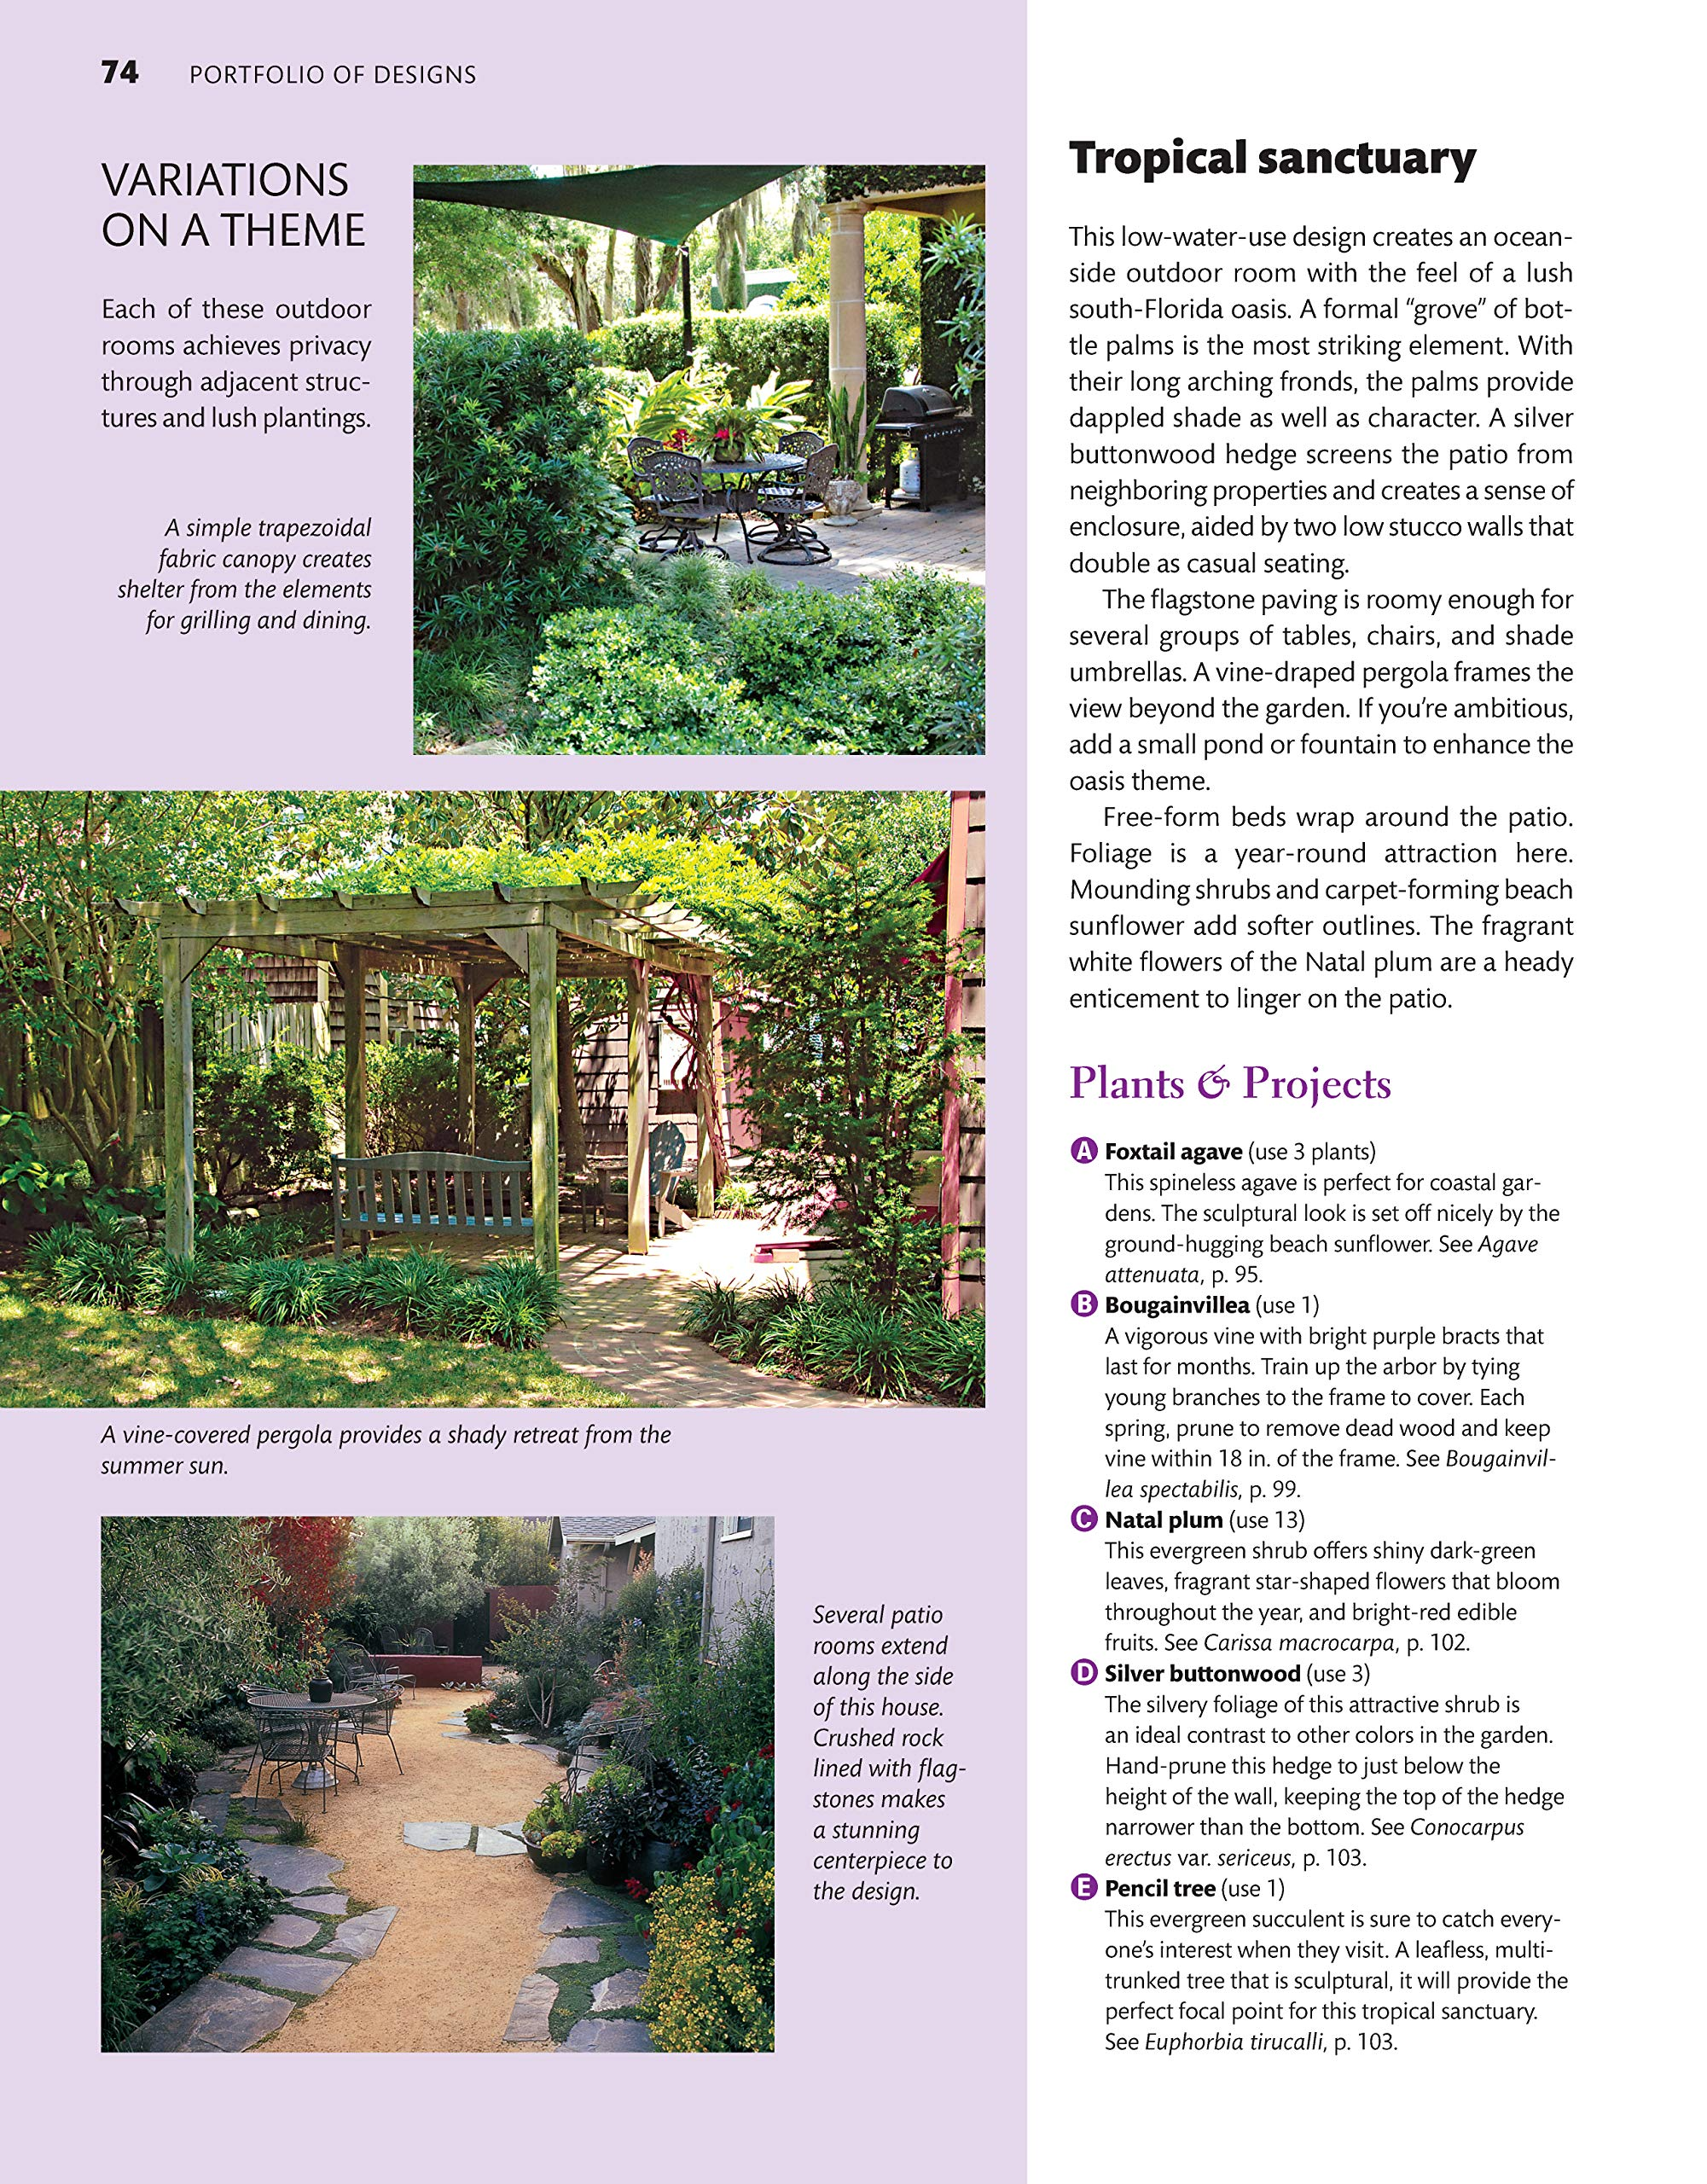 Southern Coastal Home Landscaping: Amazon.es: Pategas, Stephen G ...